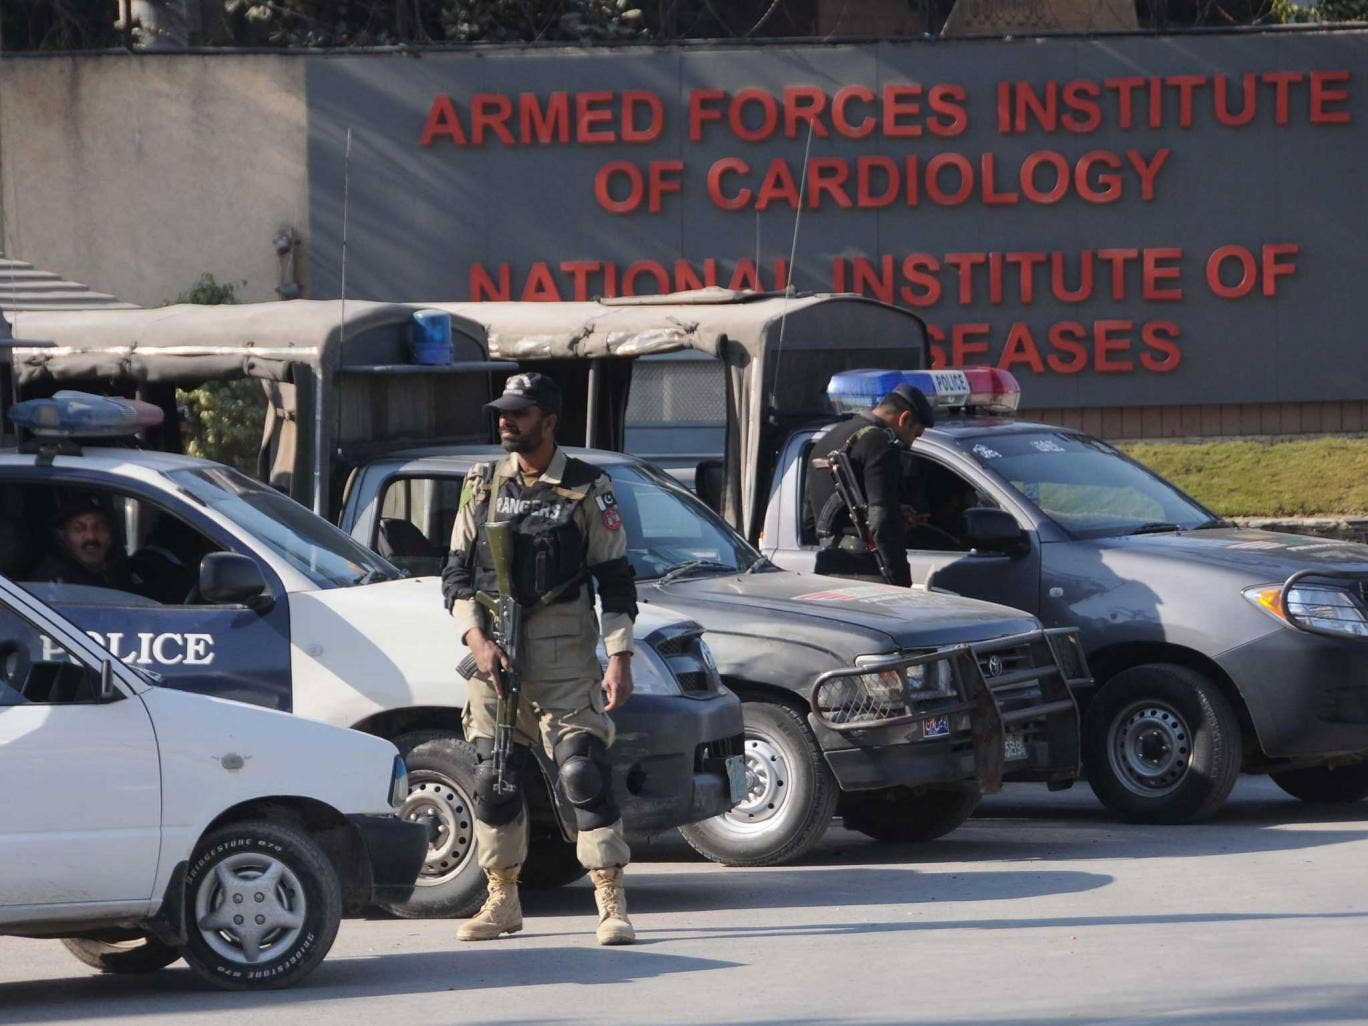 Pakistani security officials stand guard outside the Armed Forces Institute of Cardiology hospital where former President Pervez Musharraf is receiving medical treatment